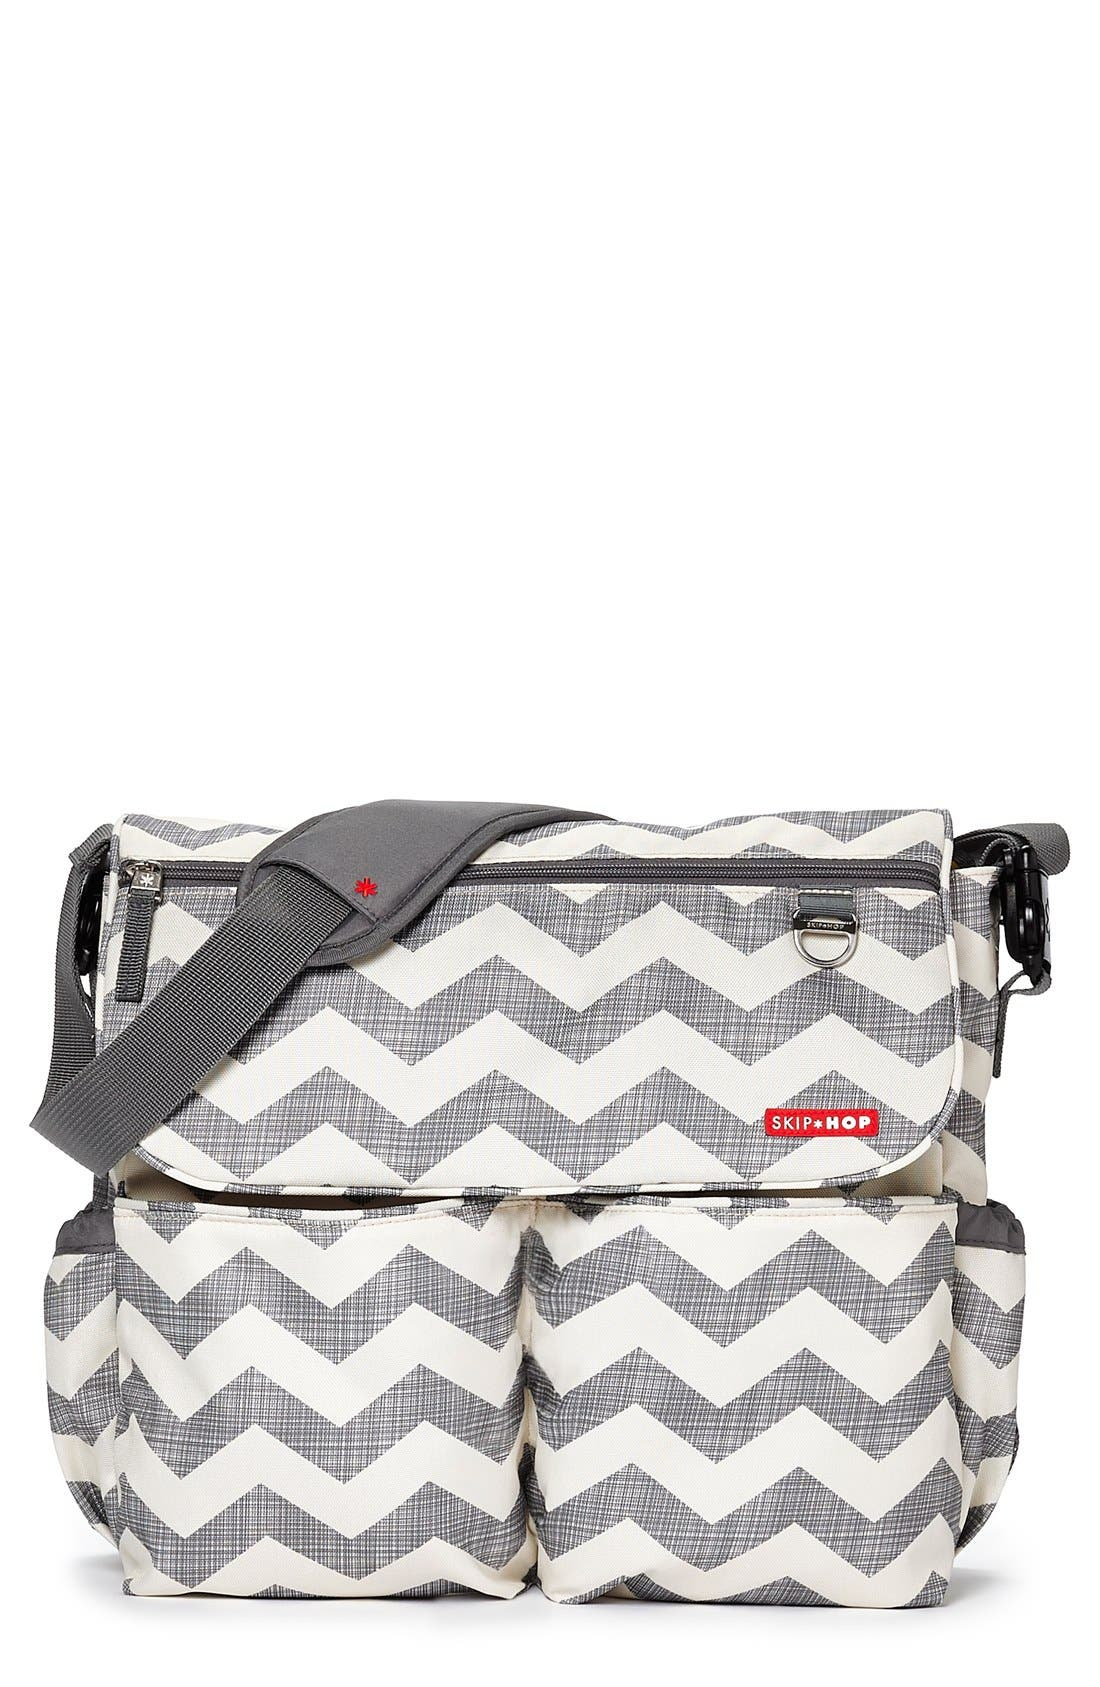 Alternate Image 1 Selected - Skip Hop 'Dash Signature' Messenger Diaper Bag